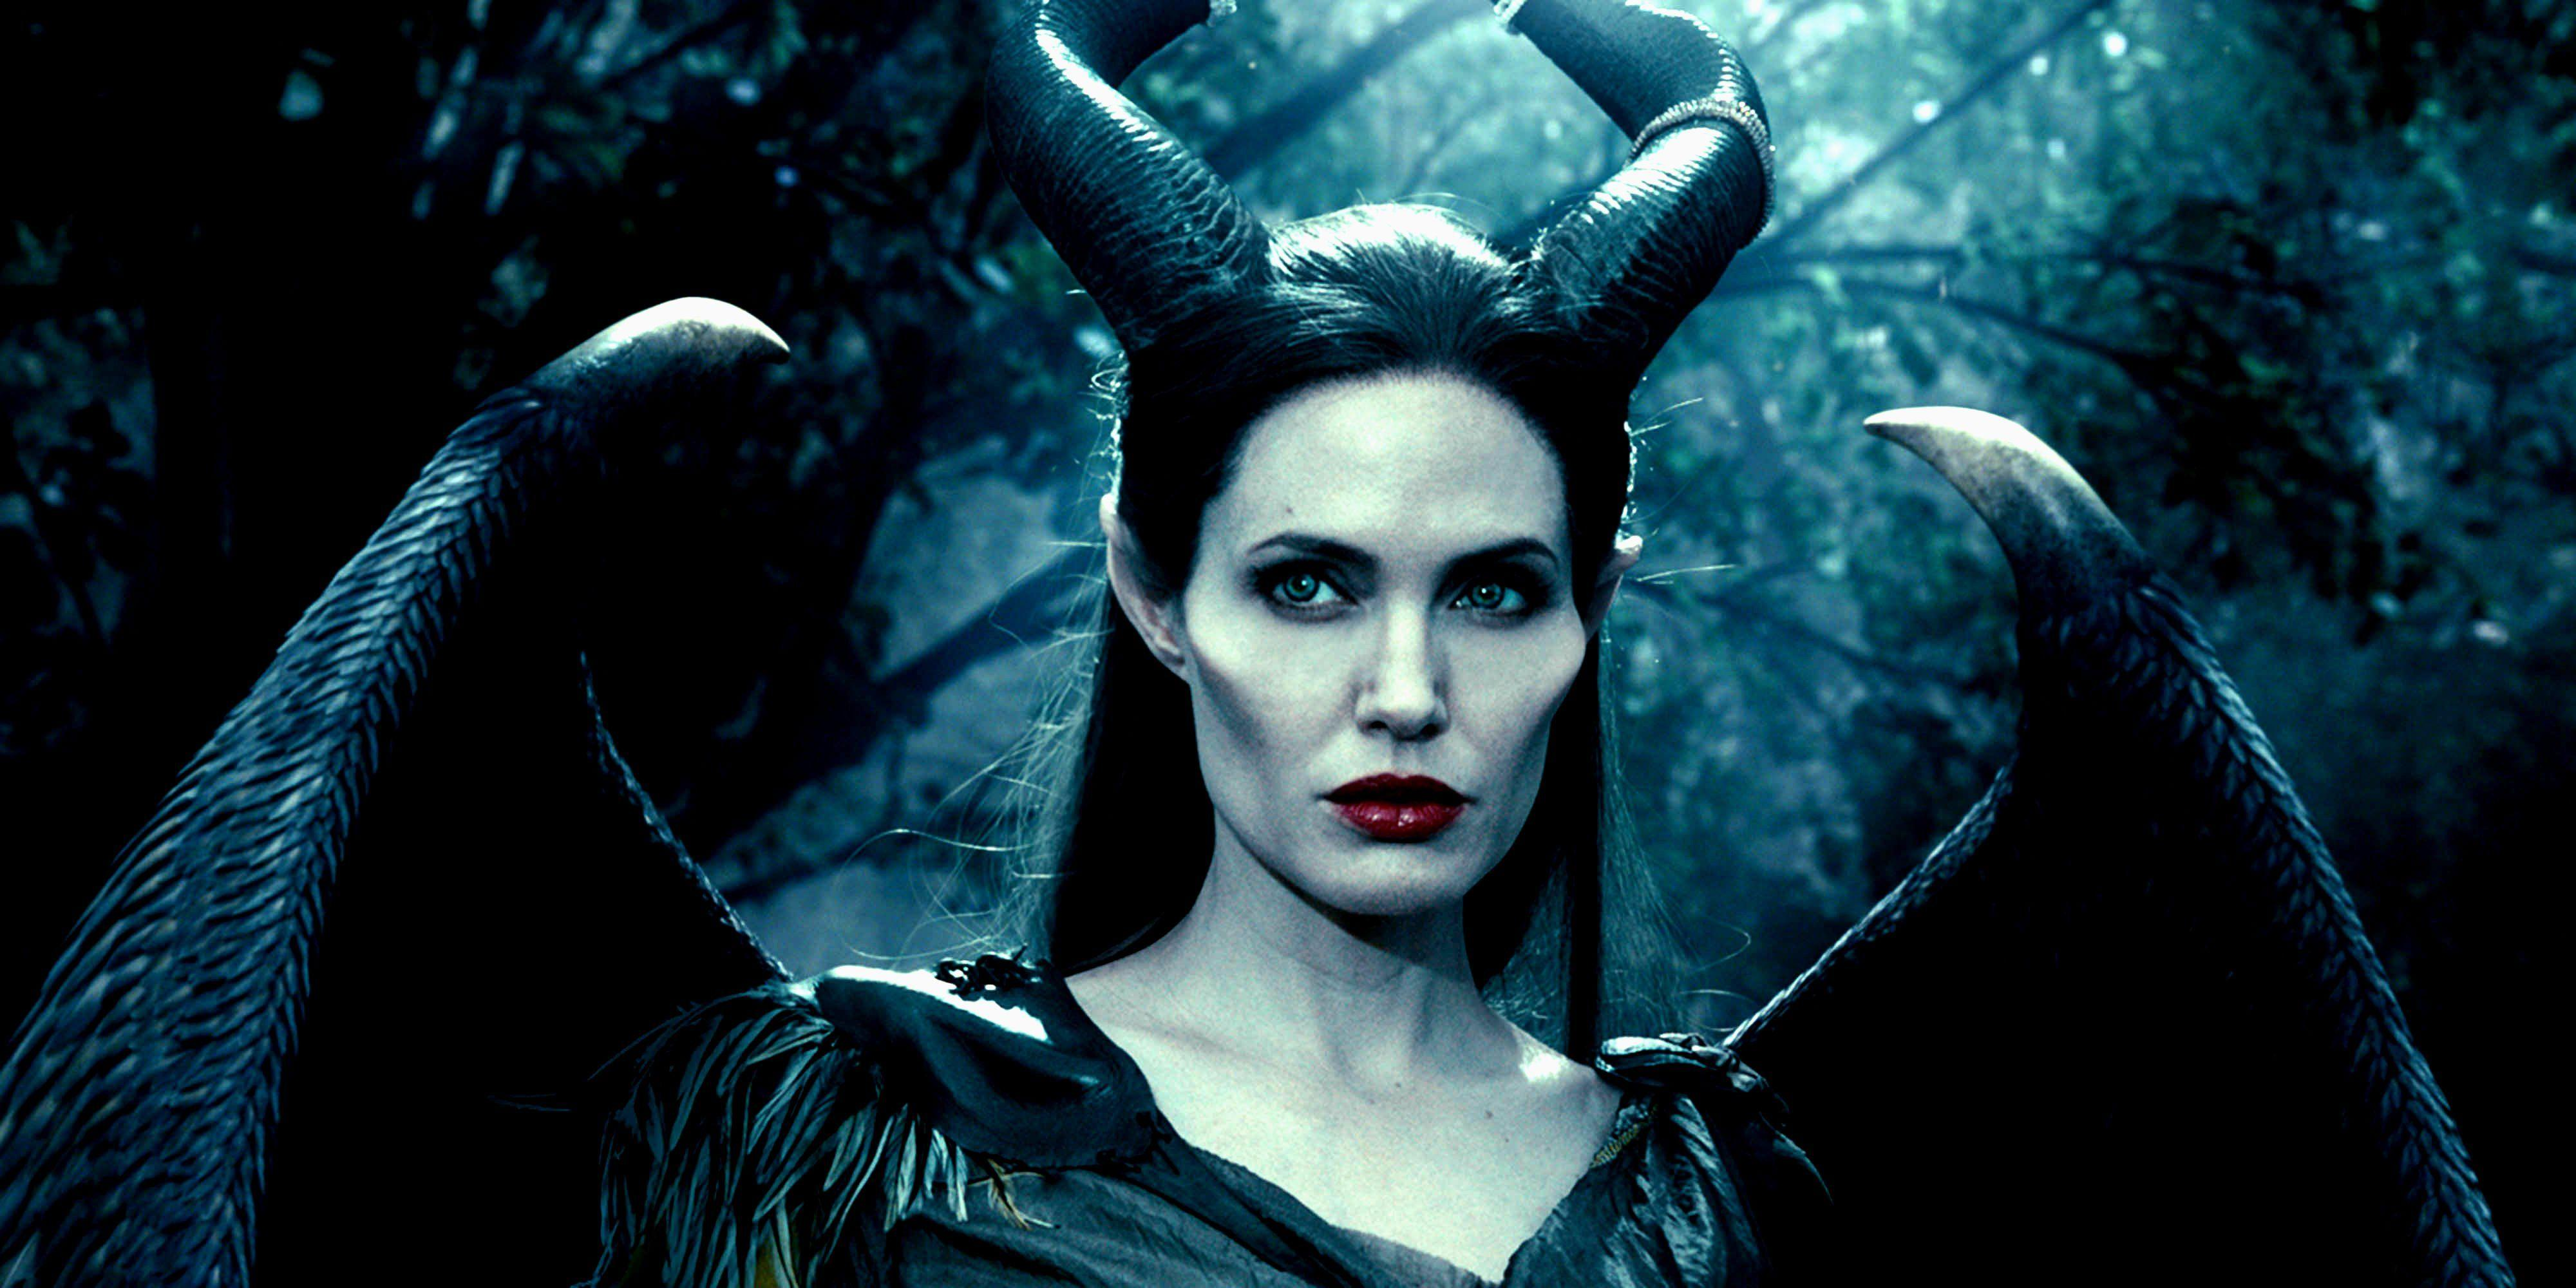 MALEFICENT fantasy disney action adventure family snow white